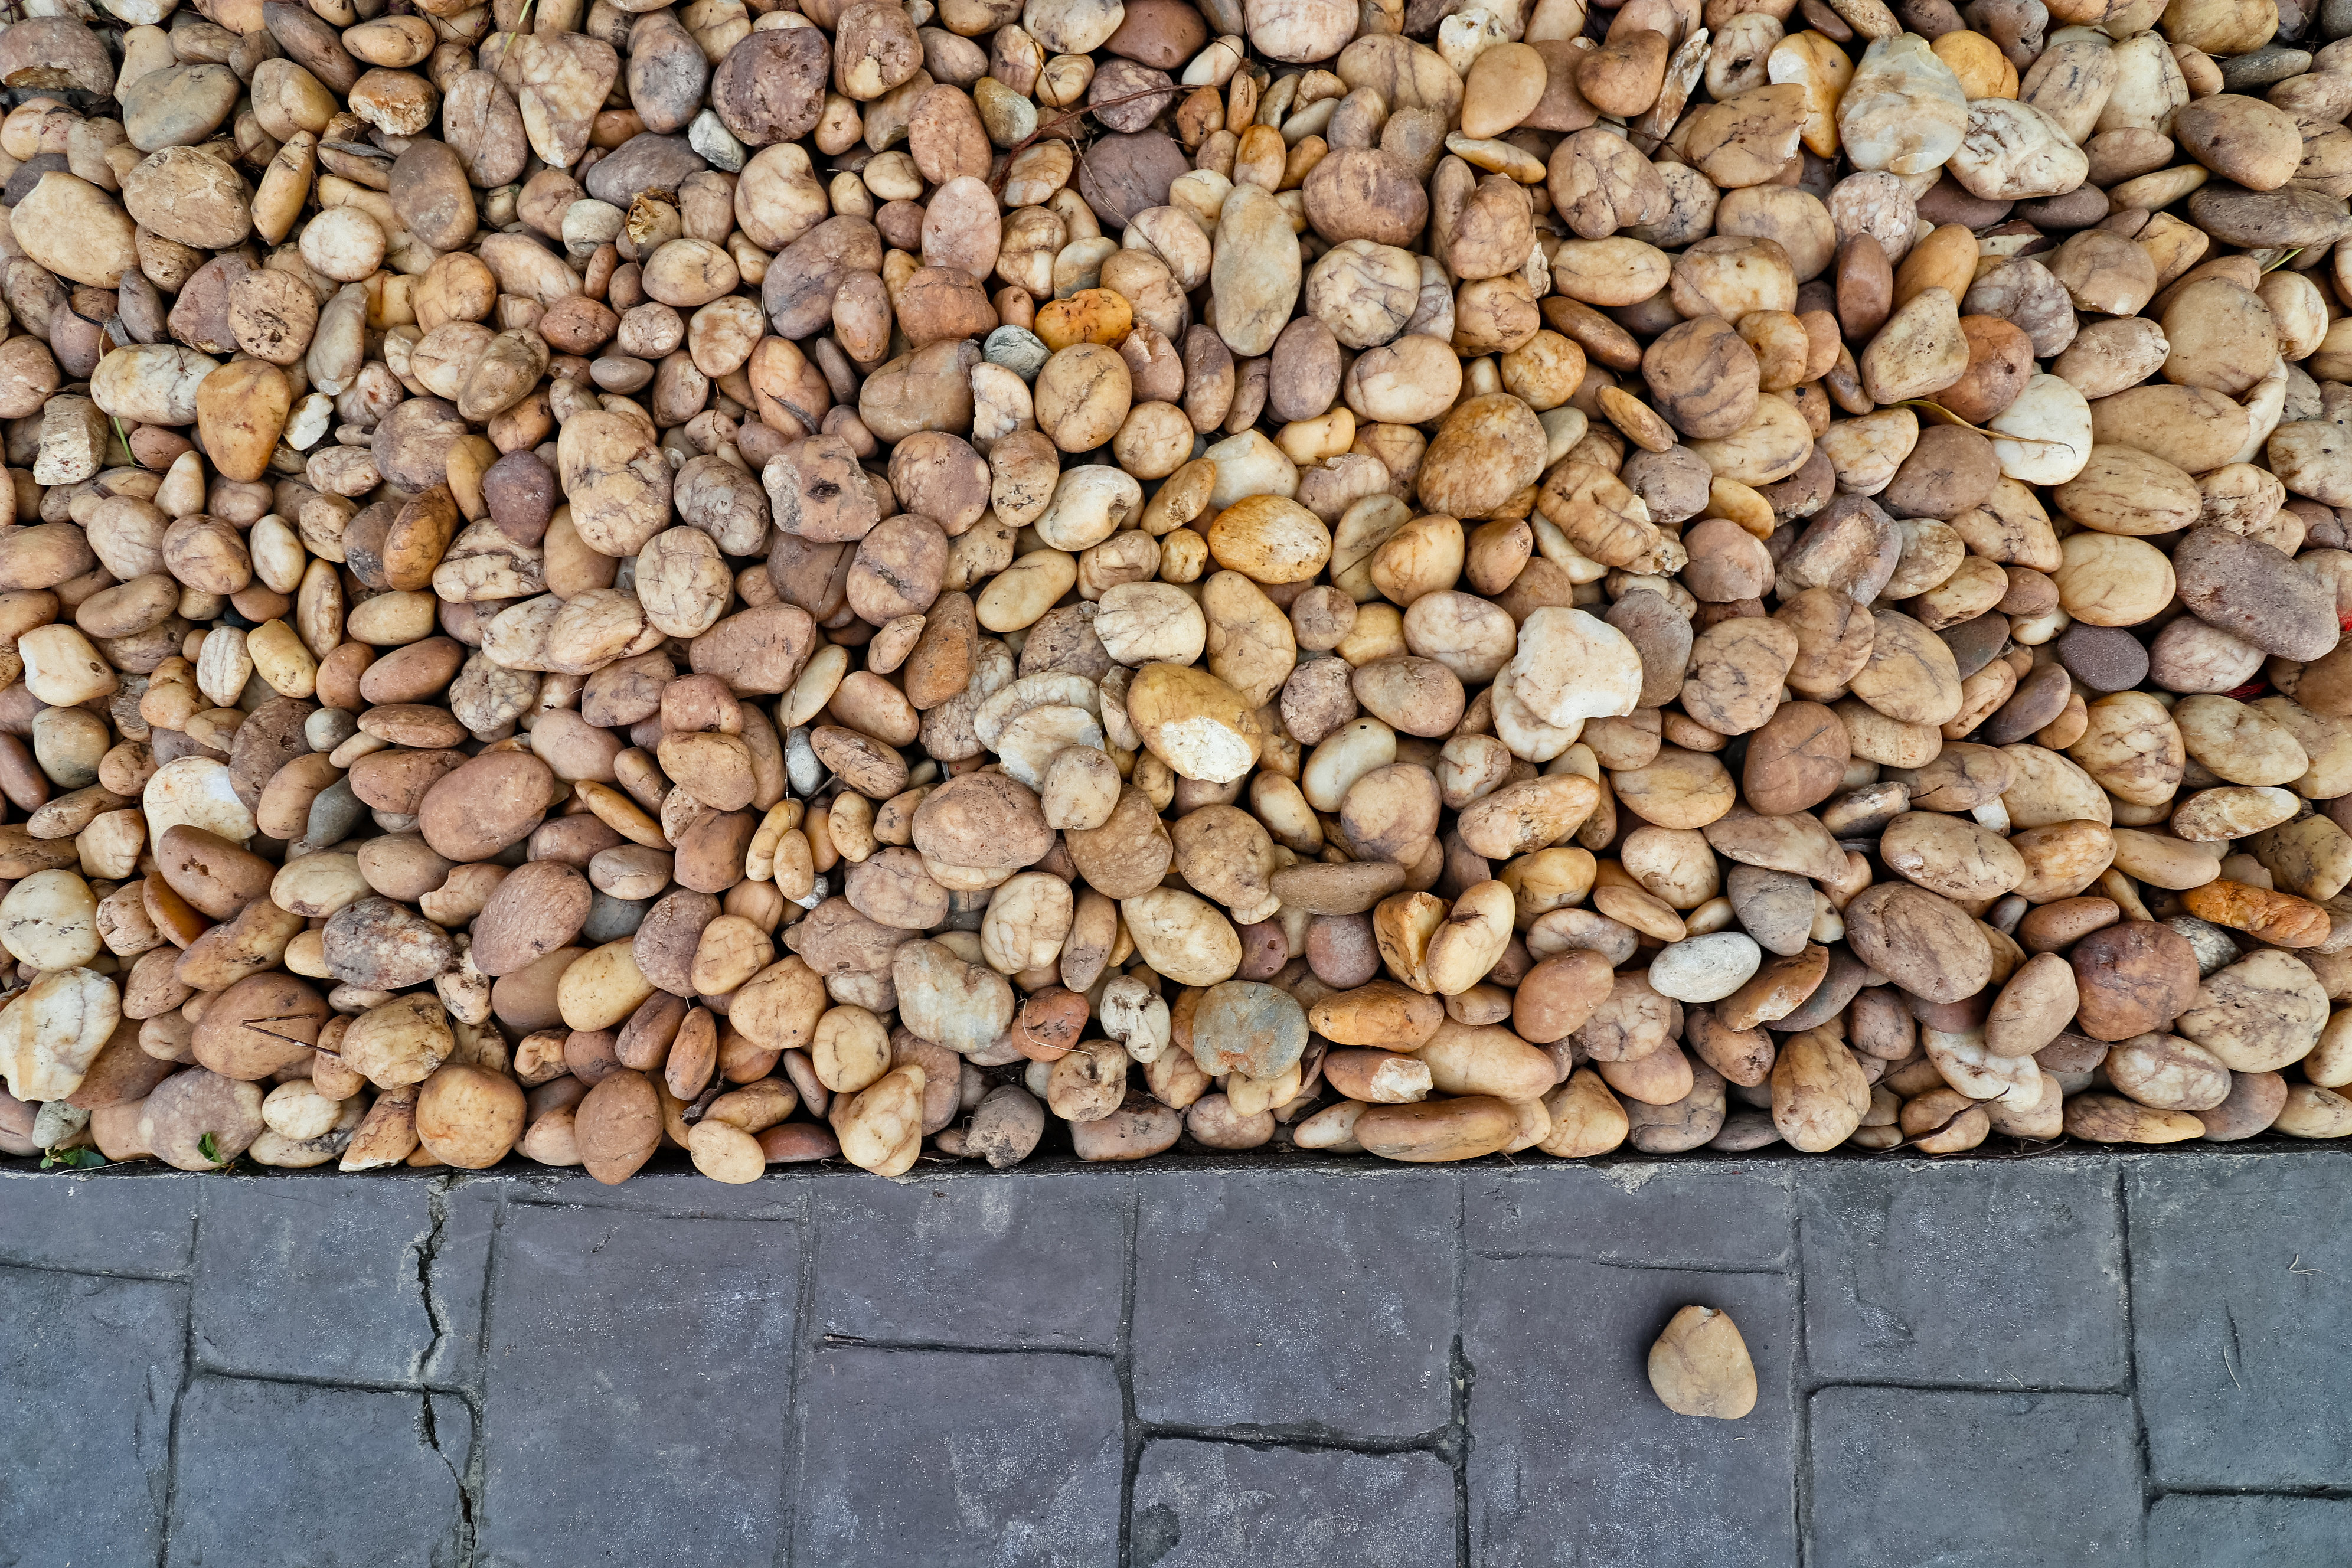 Abstract background: Decorative floor pattern of small gravel and seamless stones, Gravel texture